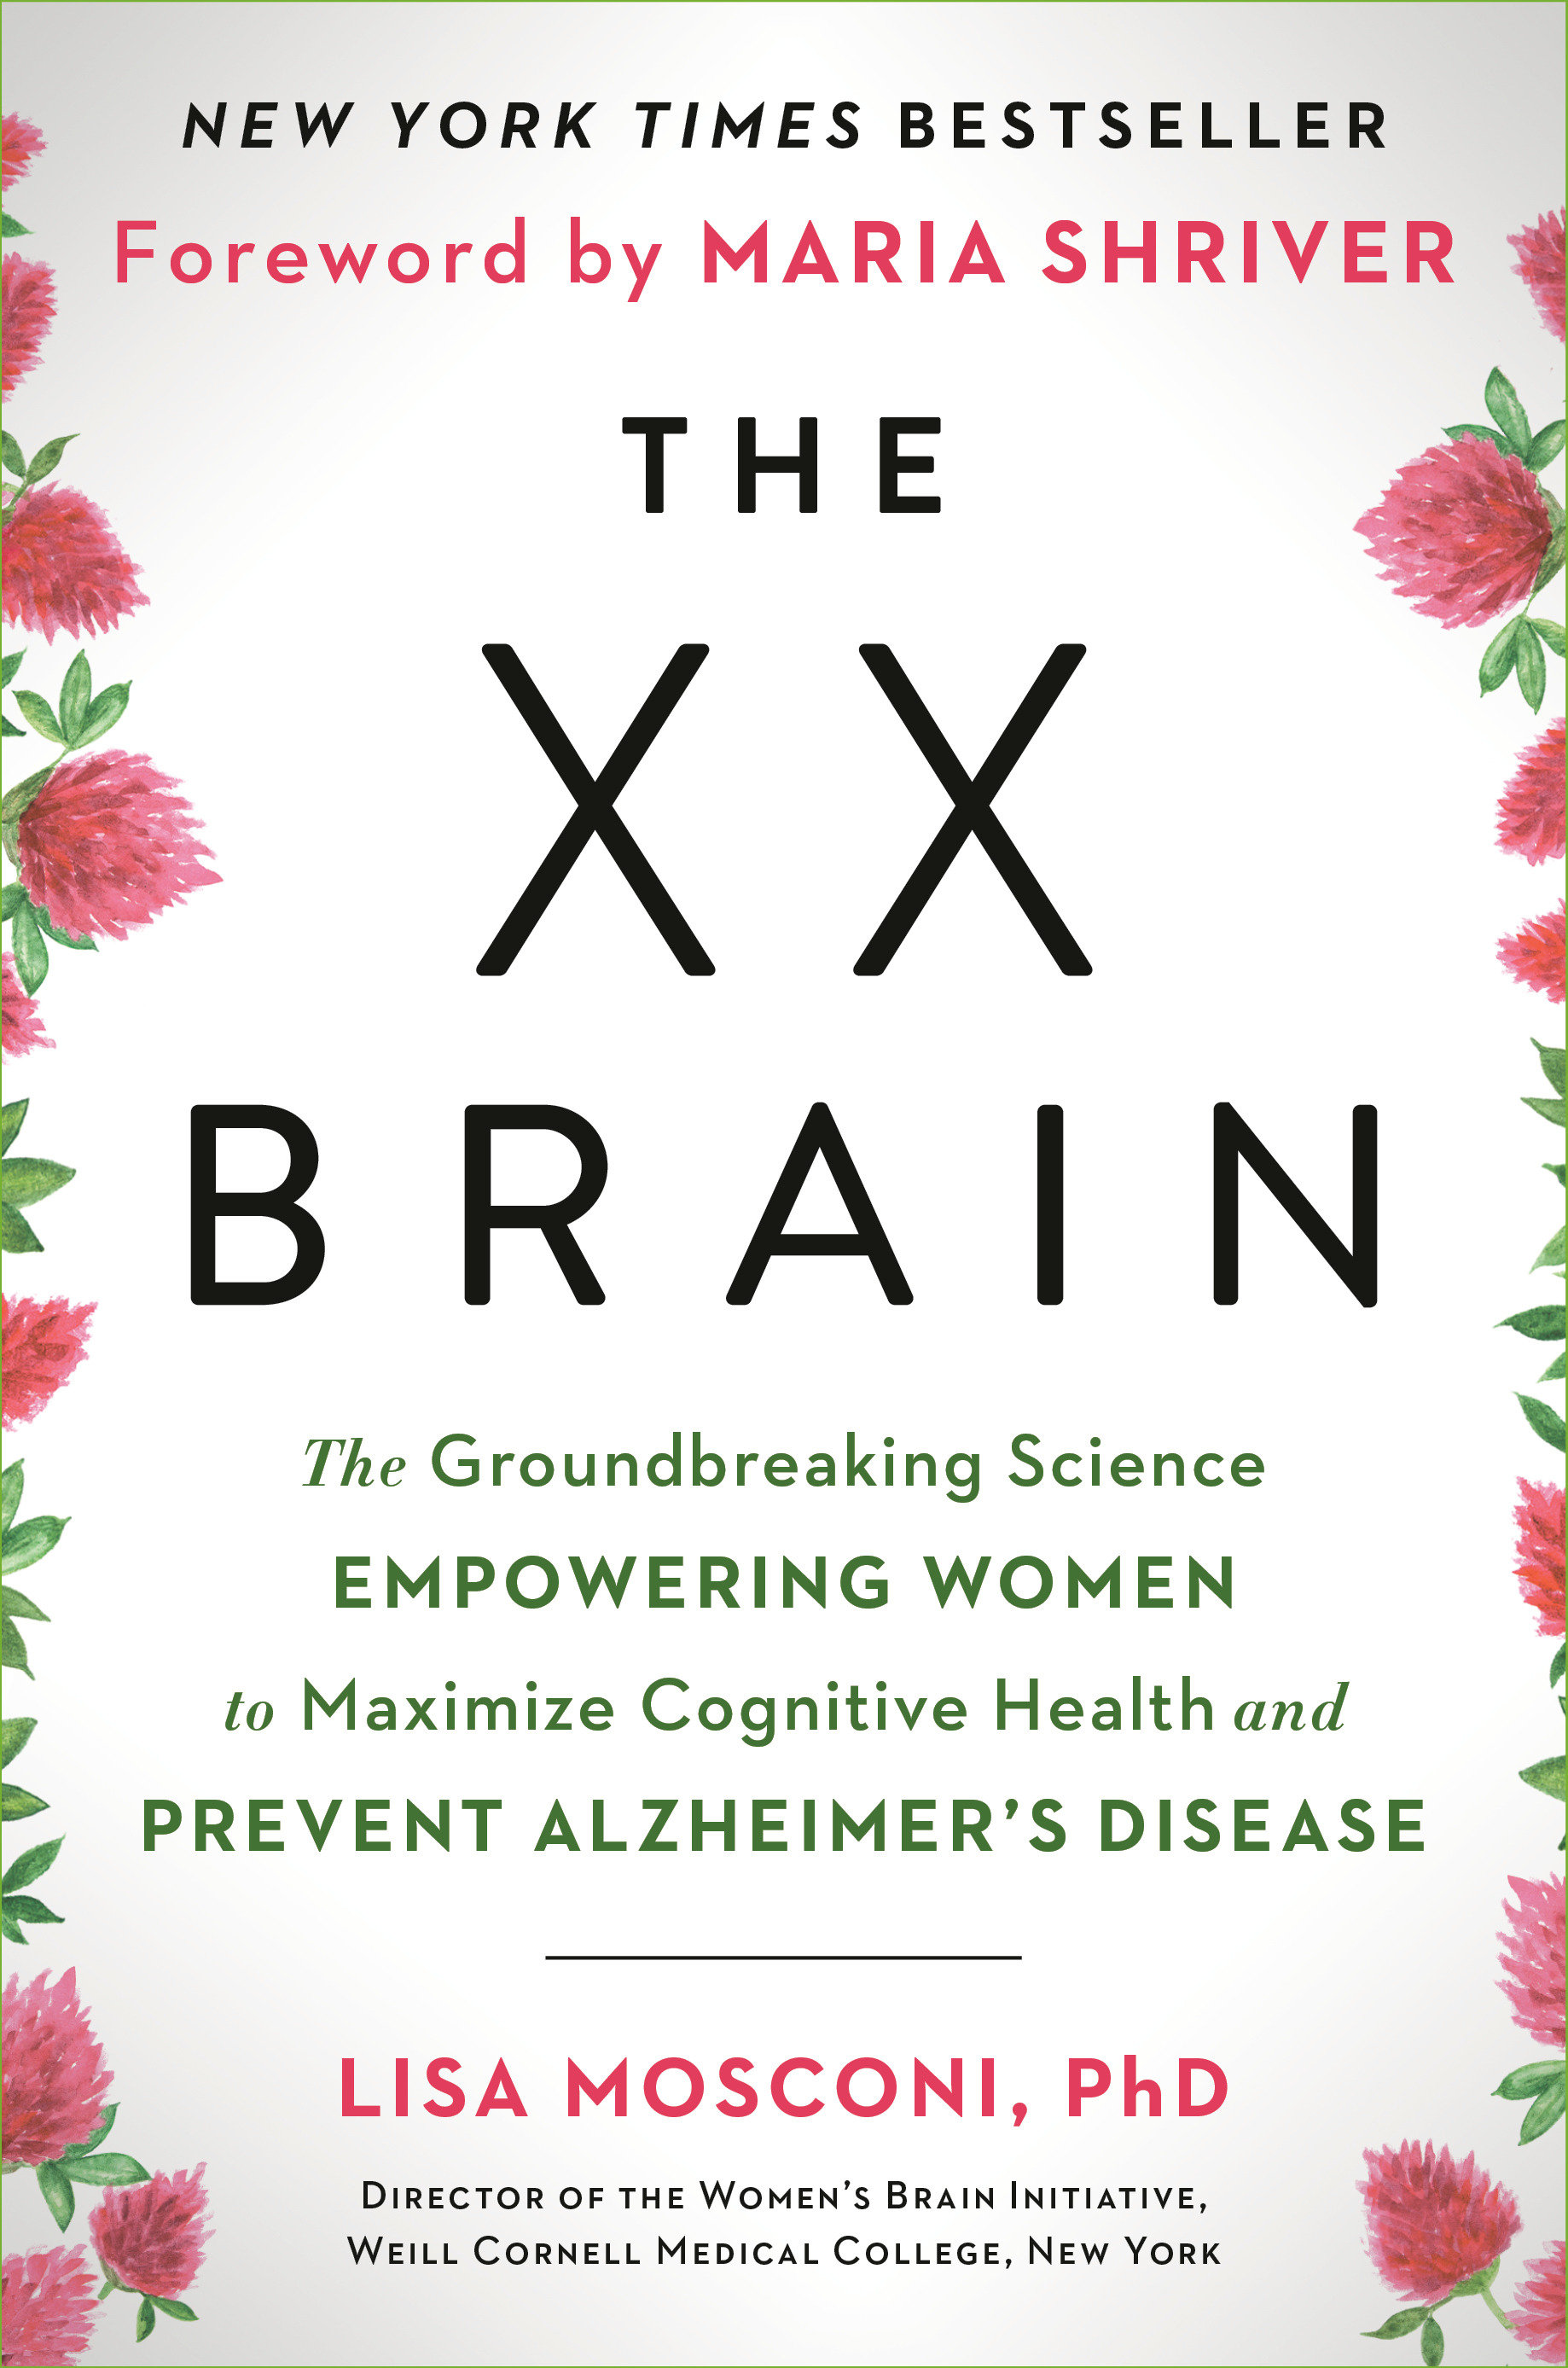 The XX Brain The Groundbreaking Science Empowering Women to Maximize Cognitive Health and Prevent Alzheimer's Disease